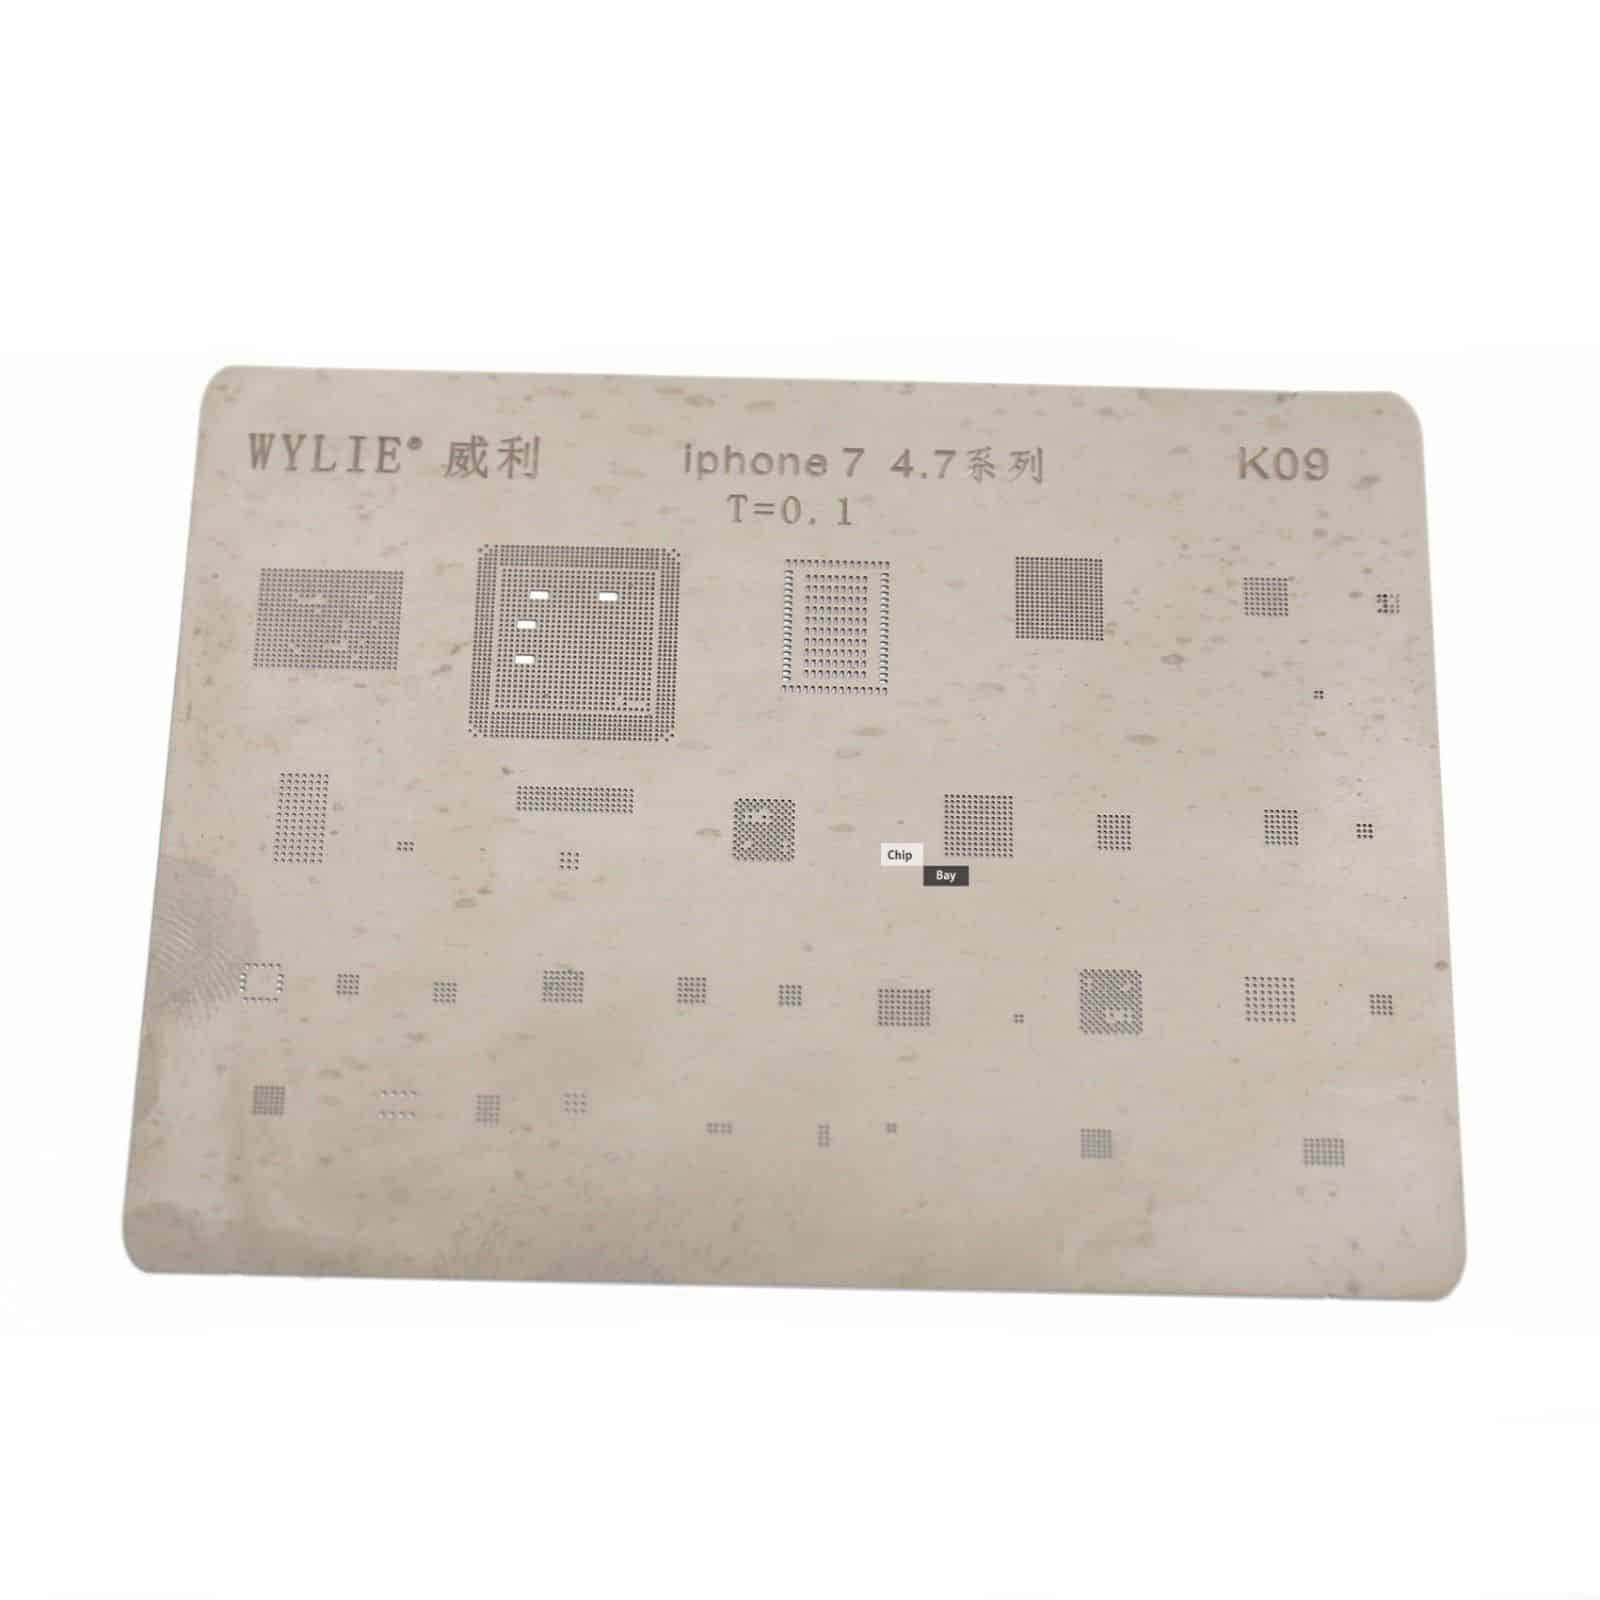 hight resolution of direct heating bga stencil for iphone 7 4 7 logic board components chipbay